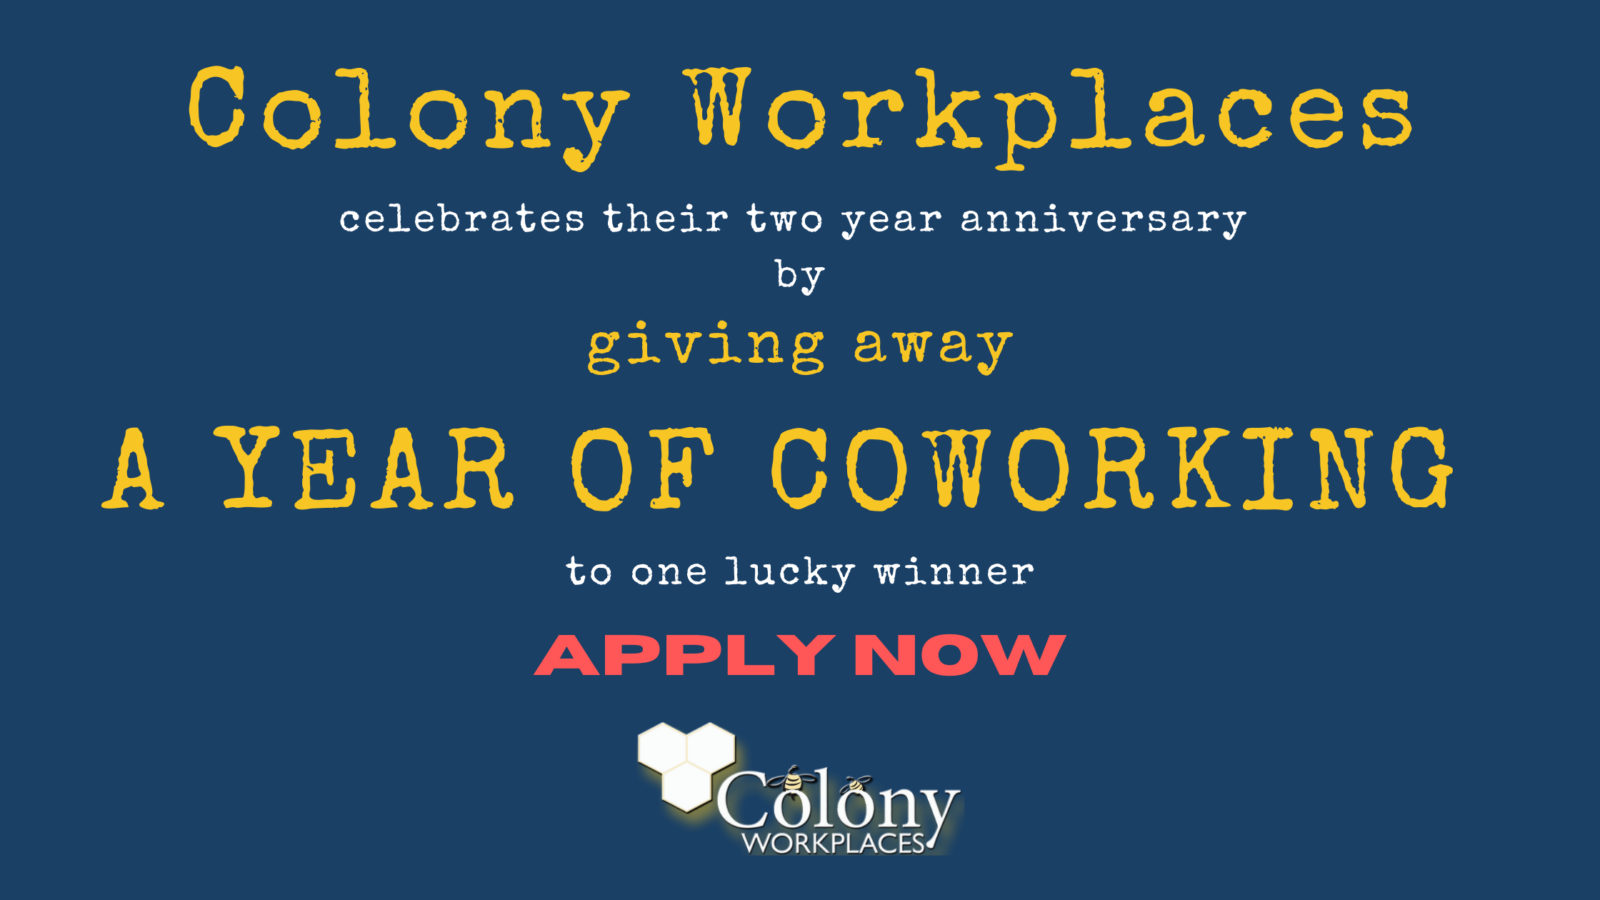 Free Coworking for a year at Colony Workplaces